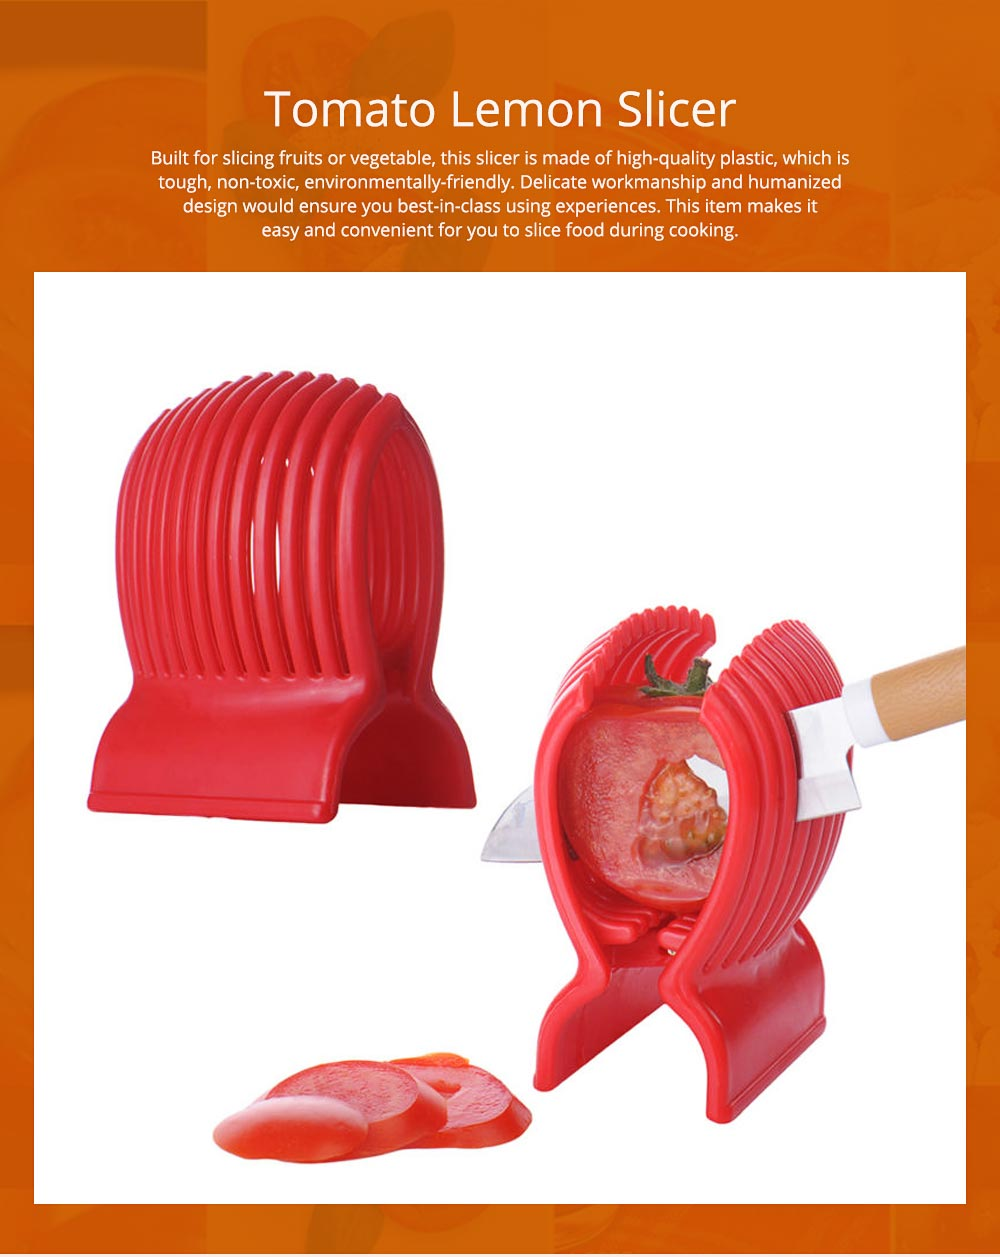 Tomato Lemon Fruits Vegetable Slicer Clip, Handy Kitchen Cooking Onion Plastic Holder Slicing Tools 0